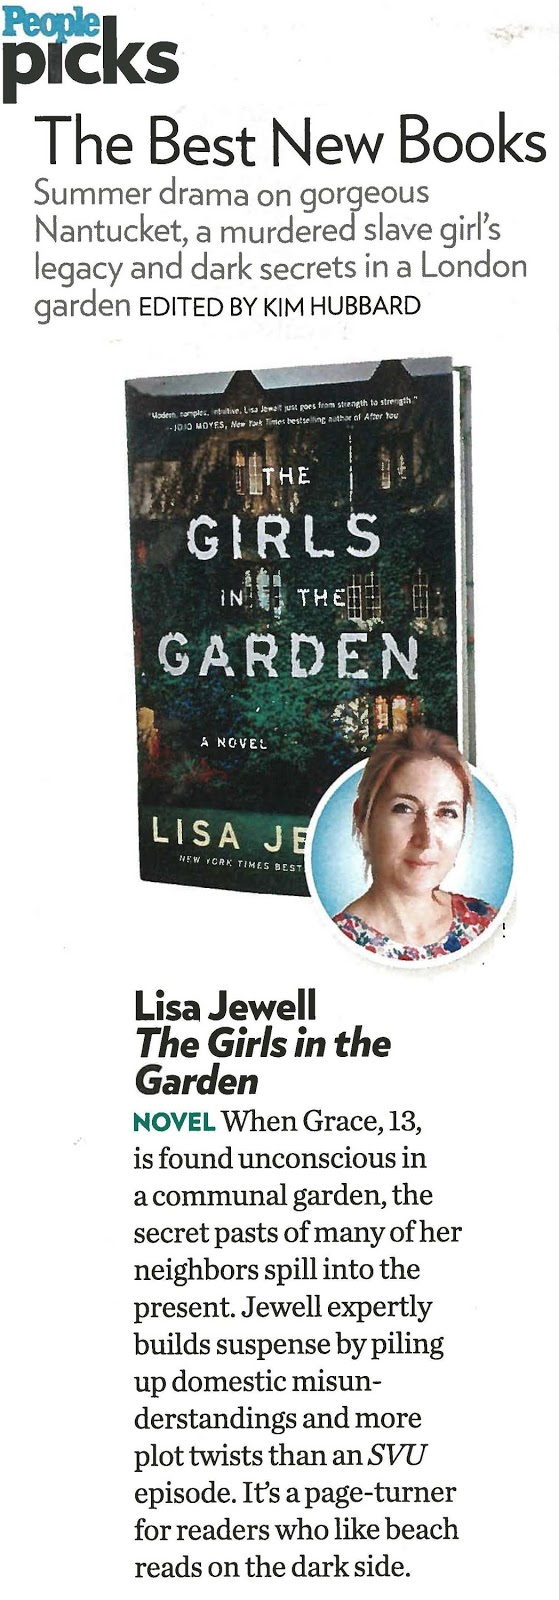 lisa jewell author of the girls in the garden on tour